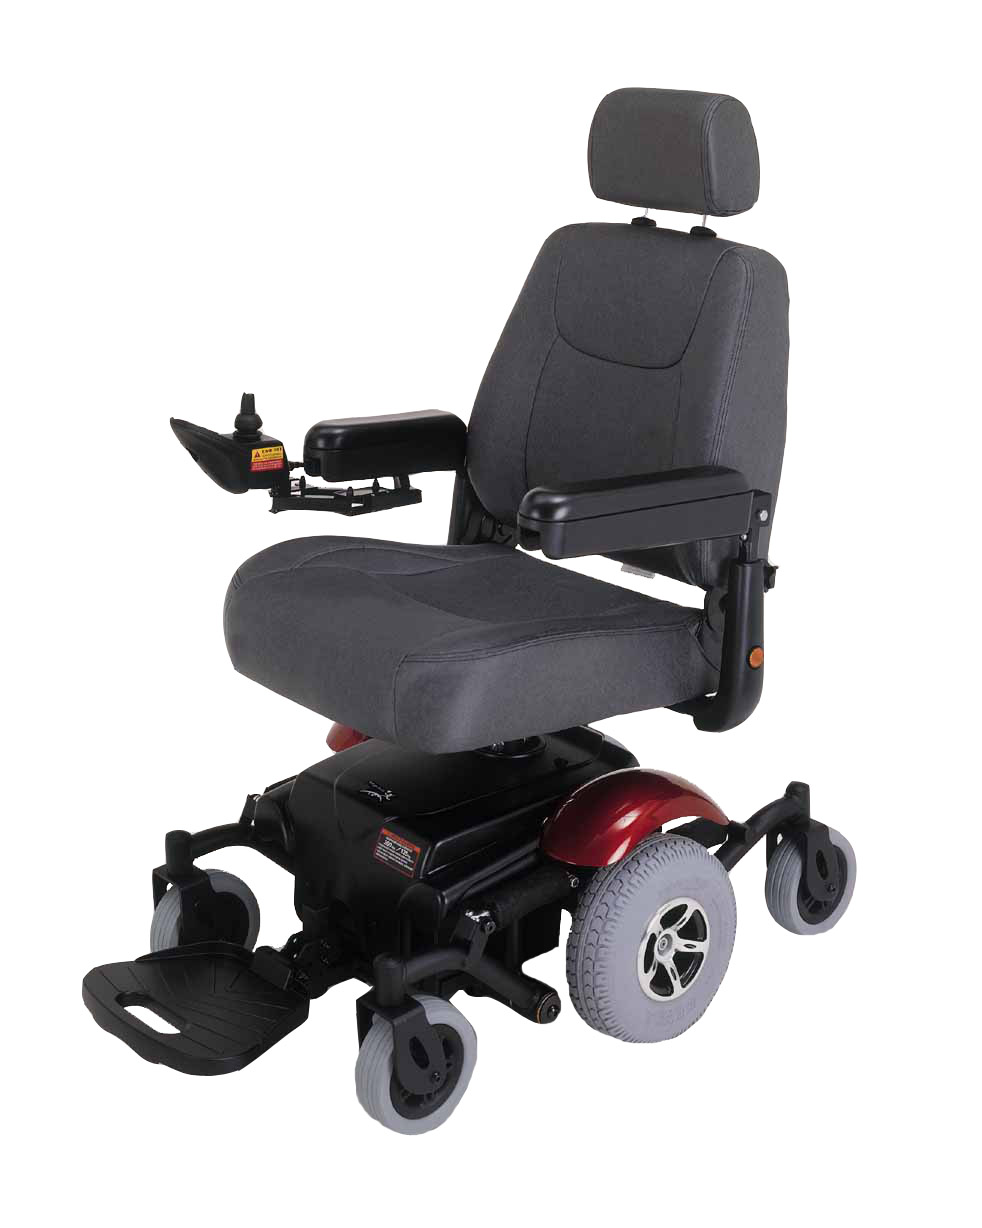 electric wheelchair batteries, power wheel chair covers hevey, invacare power wheelchair, metro power wheel chairs